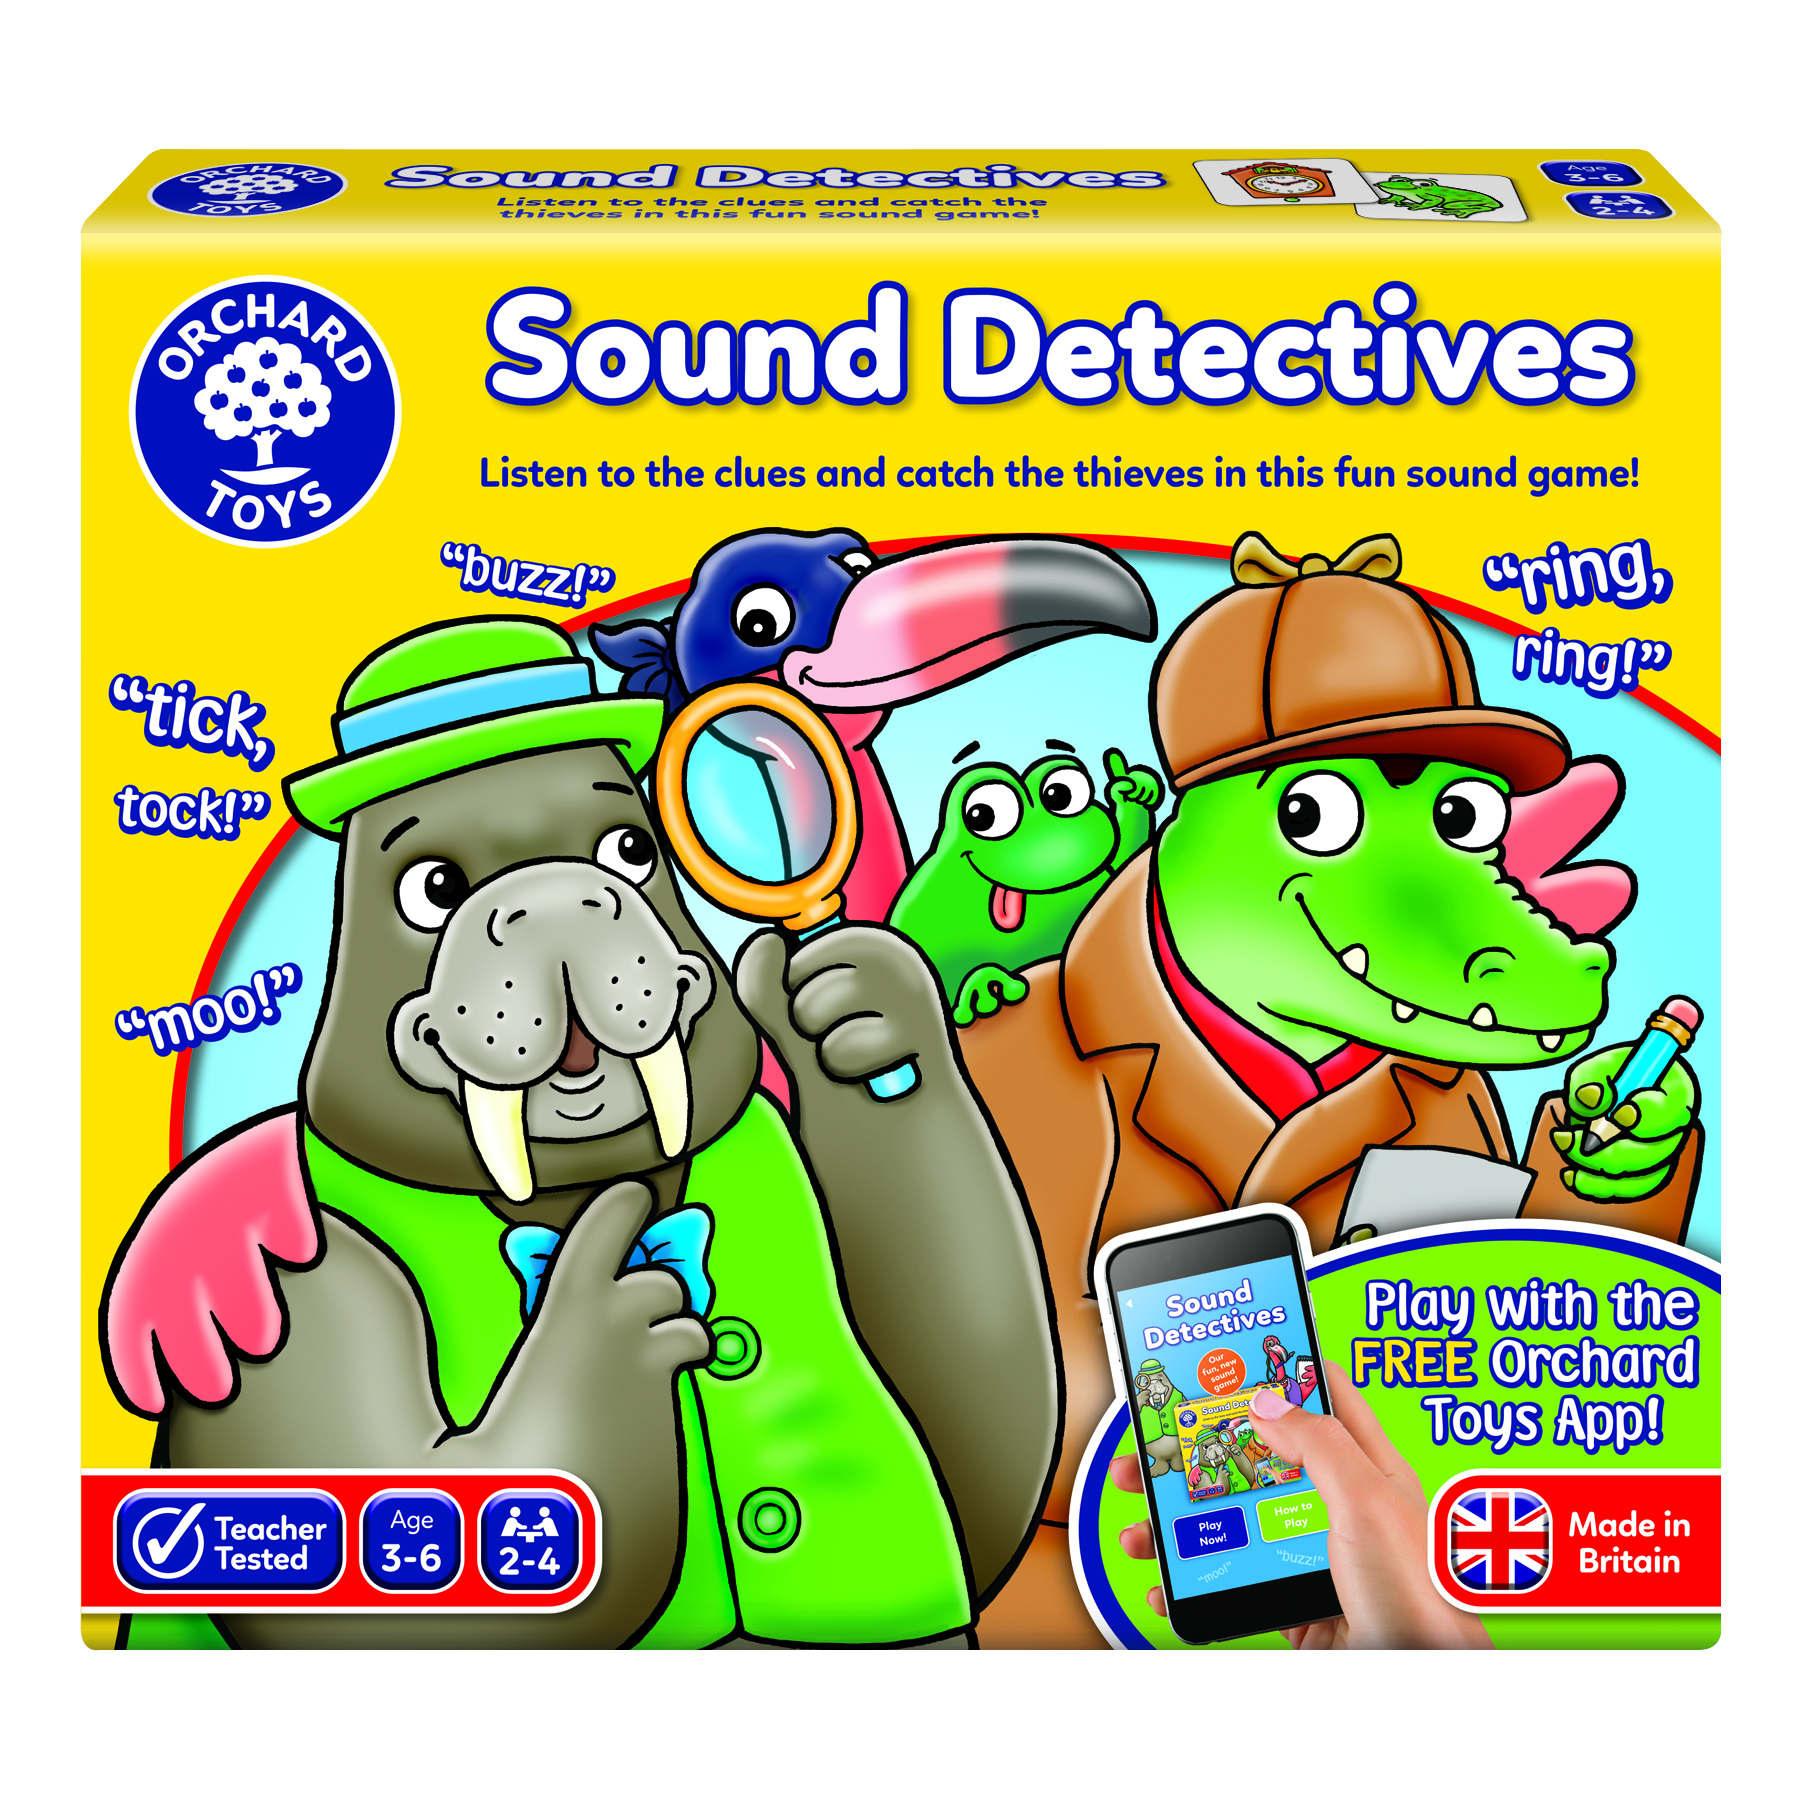 Sound Detectives by Orchard Toys